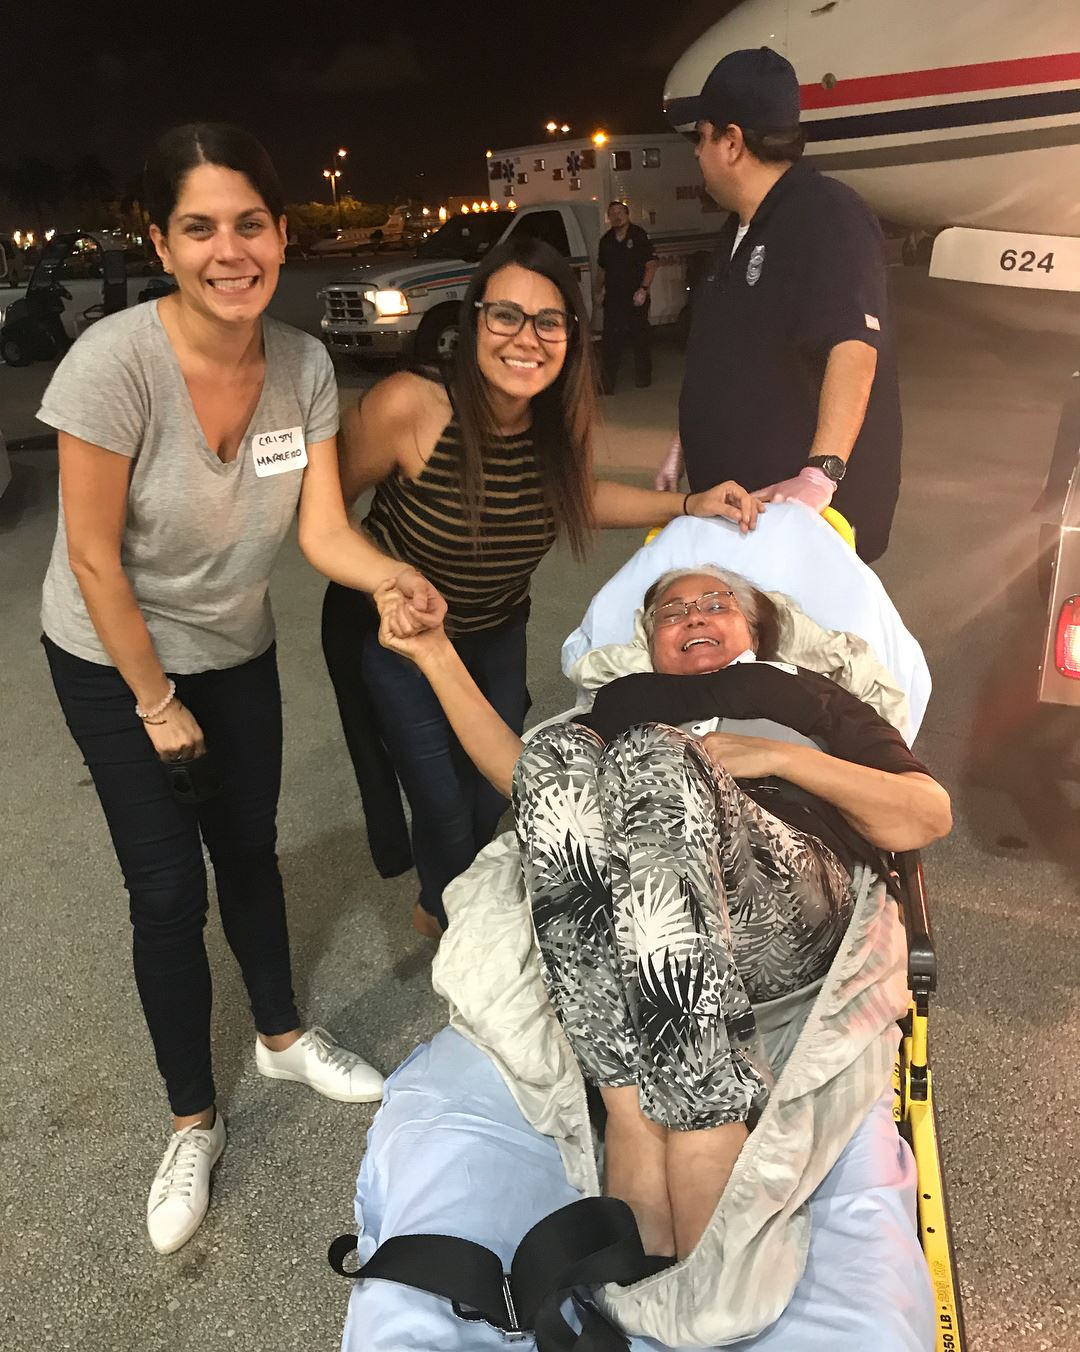 Lilly Rodriguez and Yendis Serrano Arriving in Miami